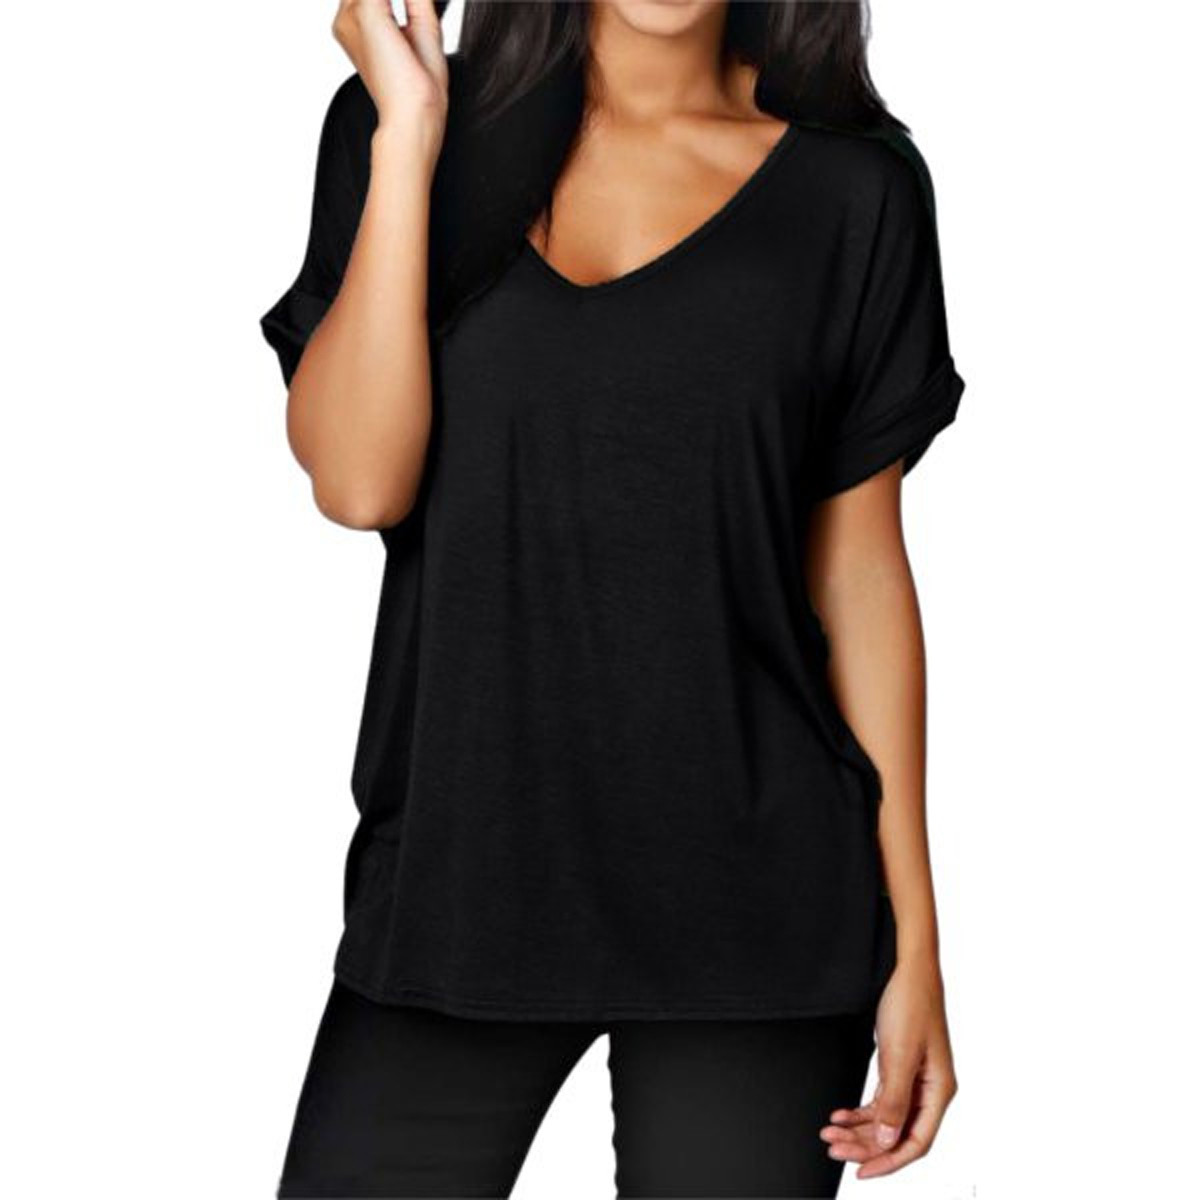 c1e5cf13285 2018 Fashion New Women Cotton T Shirt Ladies Summer Short Sleeve V neck  Loose Basic Tee Top Casual Plain Tshirt Blusas Plus Size-in T-Shirts from  Women s ...